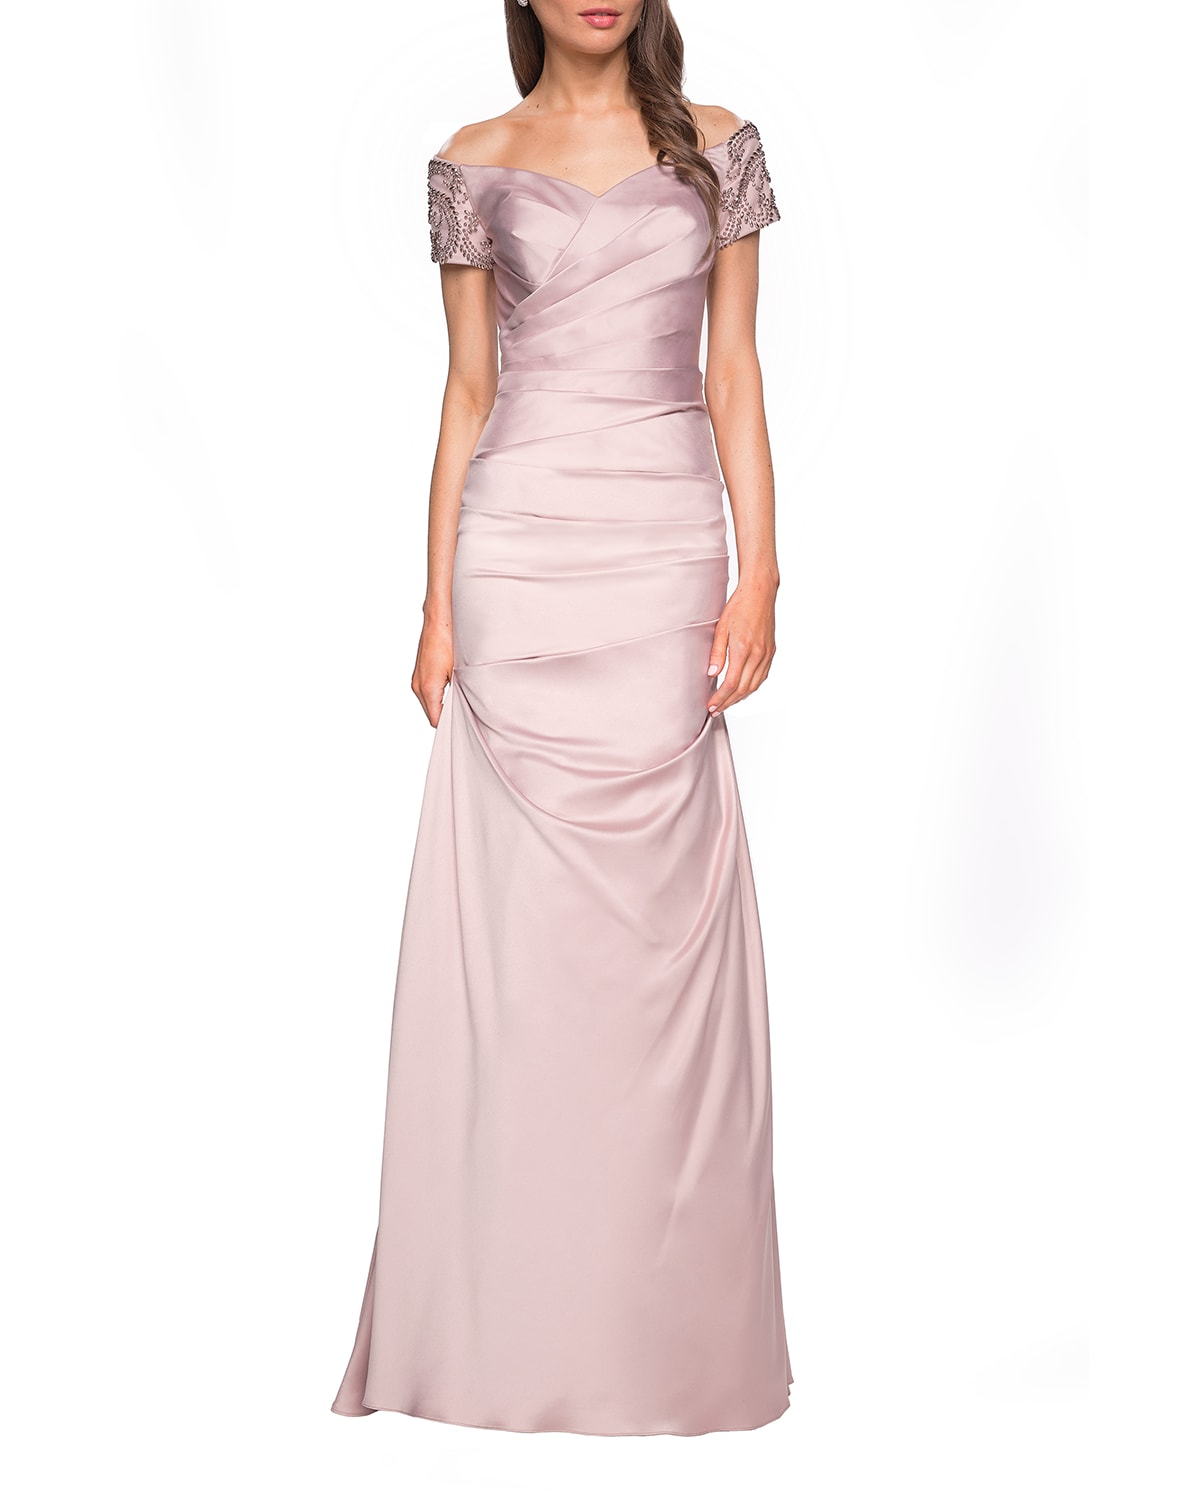 Ruched & Beaded Short-Sleeve Gown